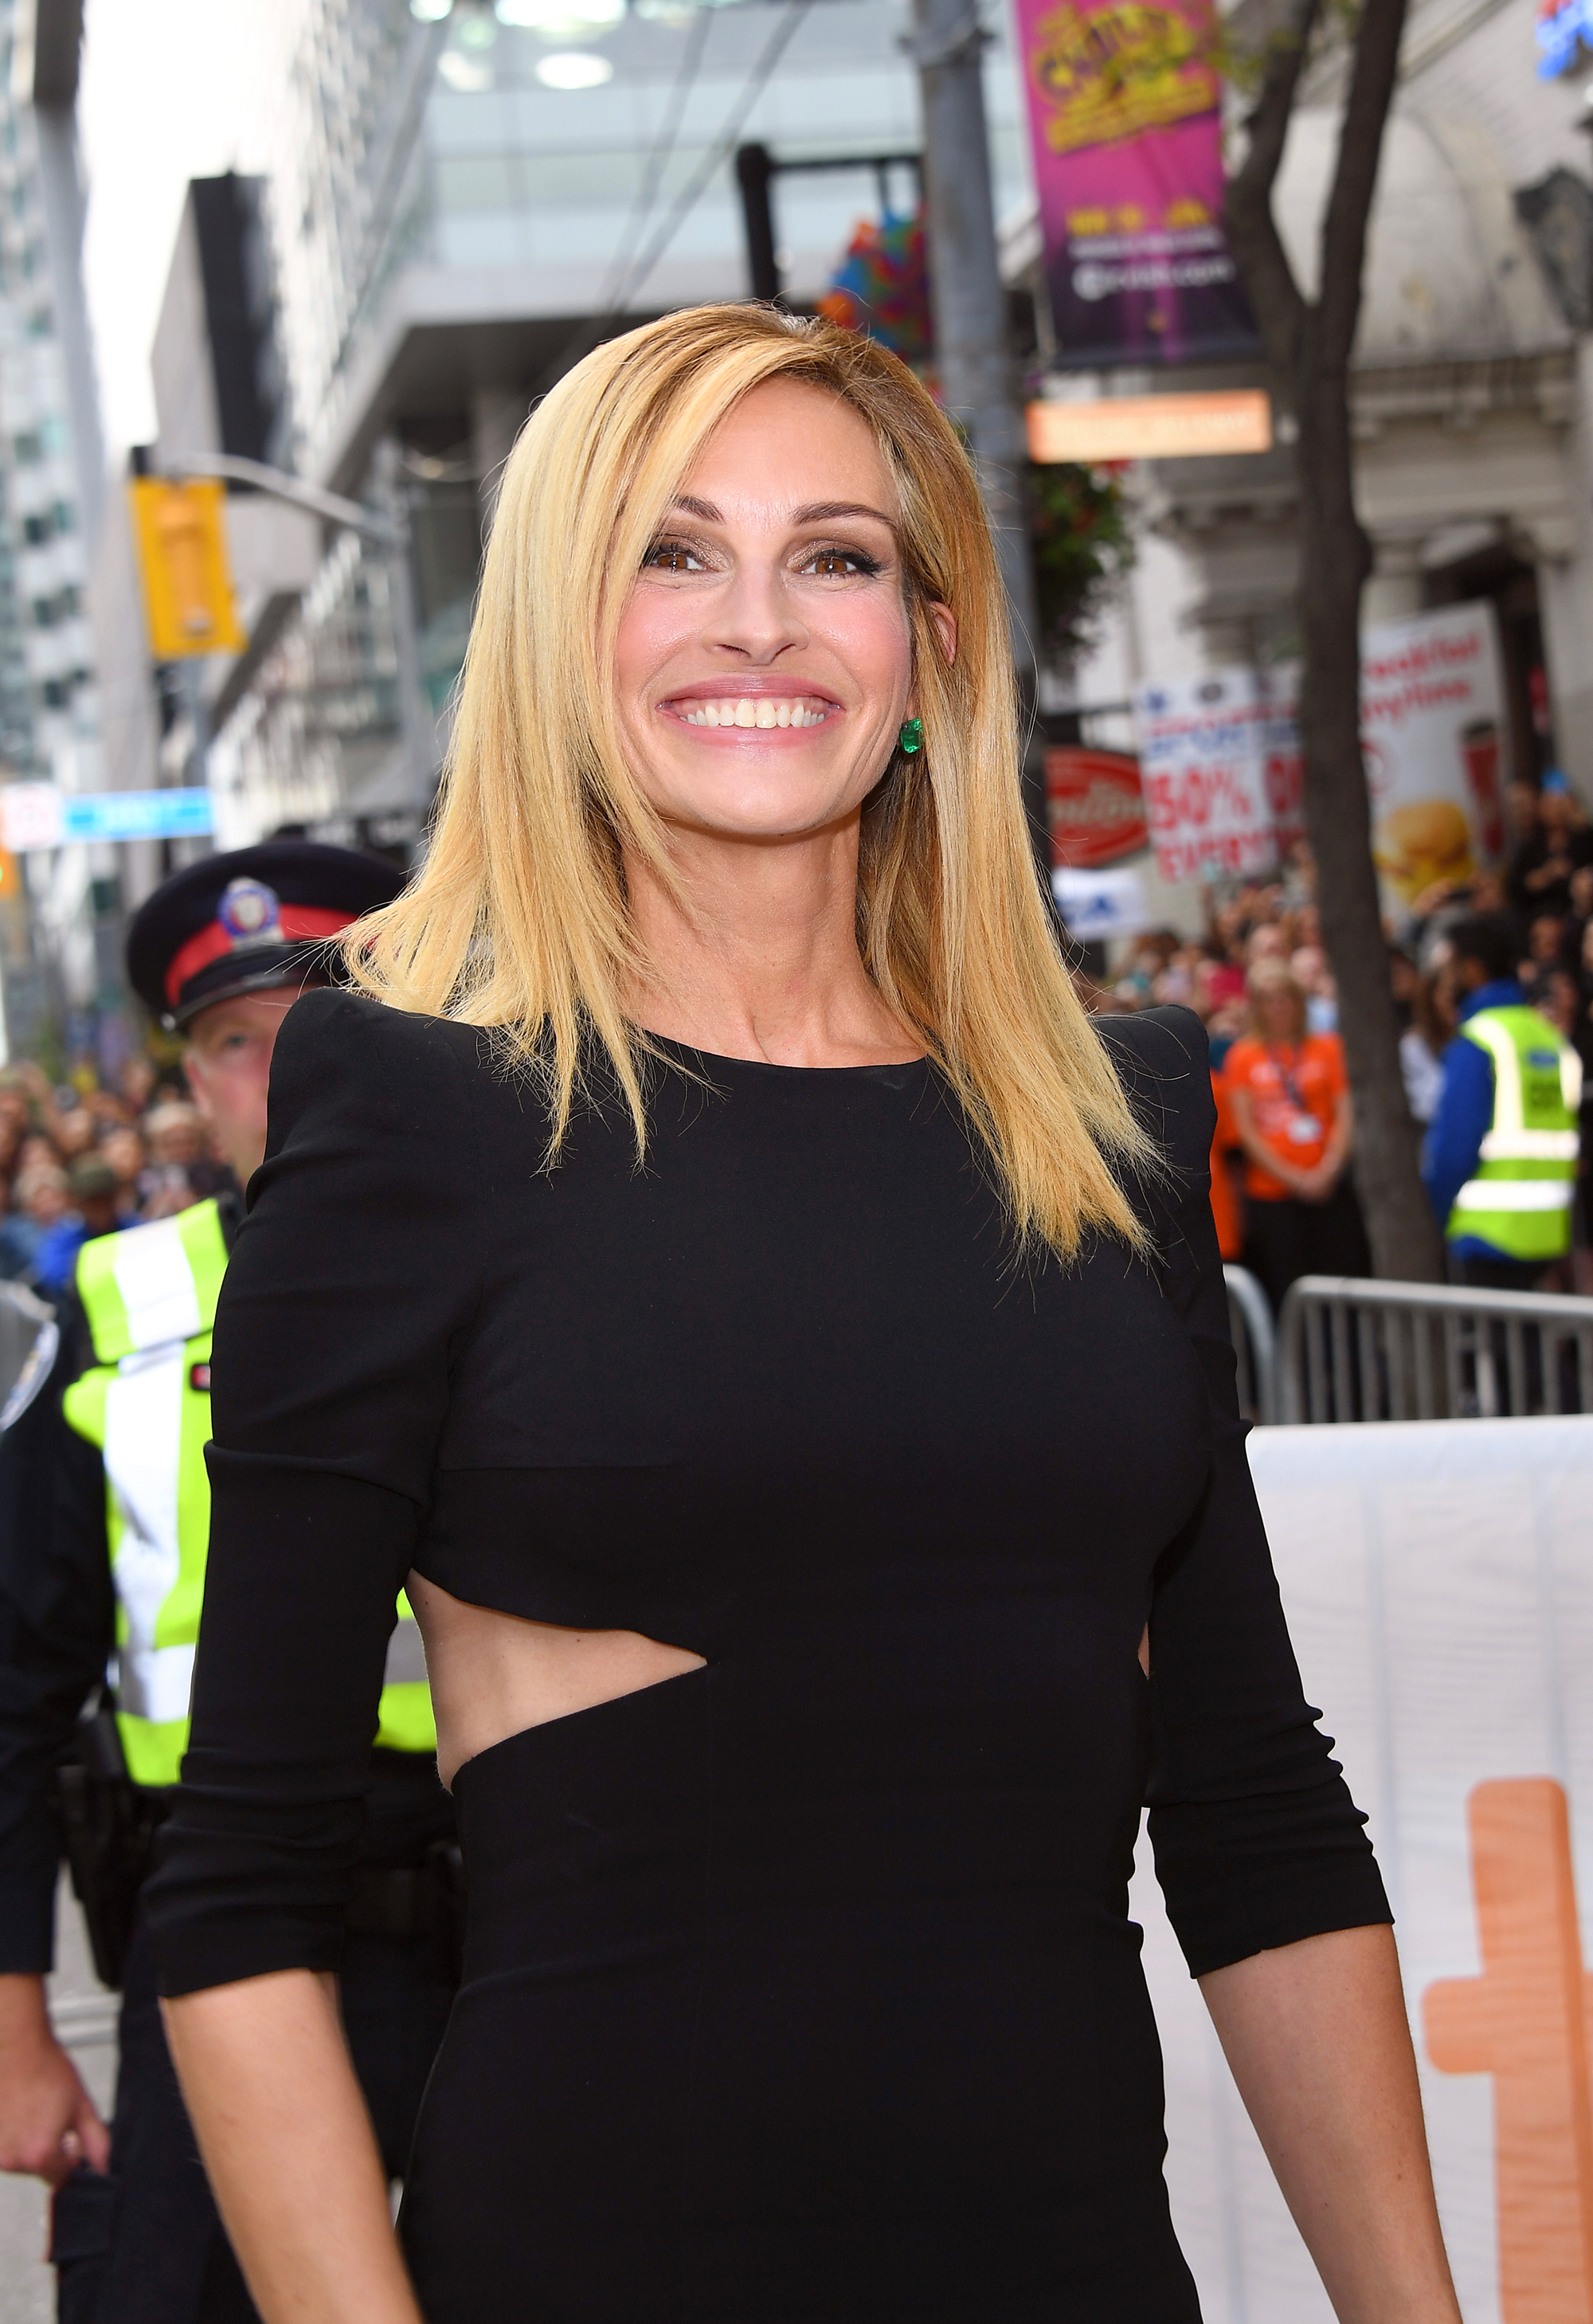 The Stars Joining Fall TV - While she's appeared in dozens of films and guest-starred on multiple TV shows like Friends and Murphy Brown , Julia Roberts has never had a main role on television until now. The Academy Award winner leads Amazon's new series, Homecoming , in which she plays a caseworker at a secret government facility in the psychological thriller.